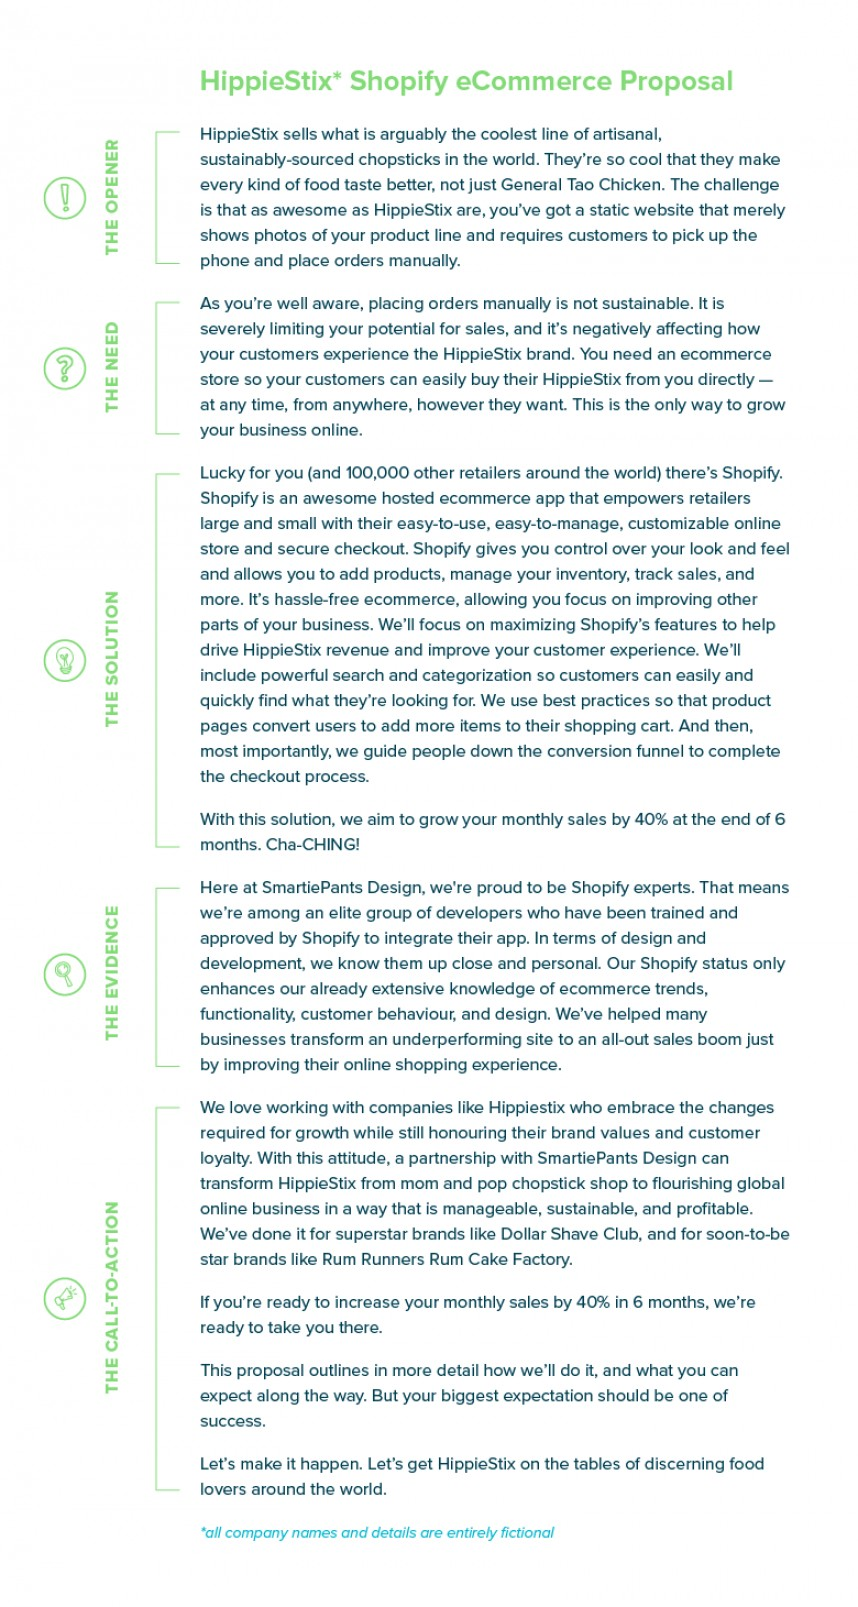 005 Executive Summary Research Paper Blog Graphic Amazing Apa